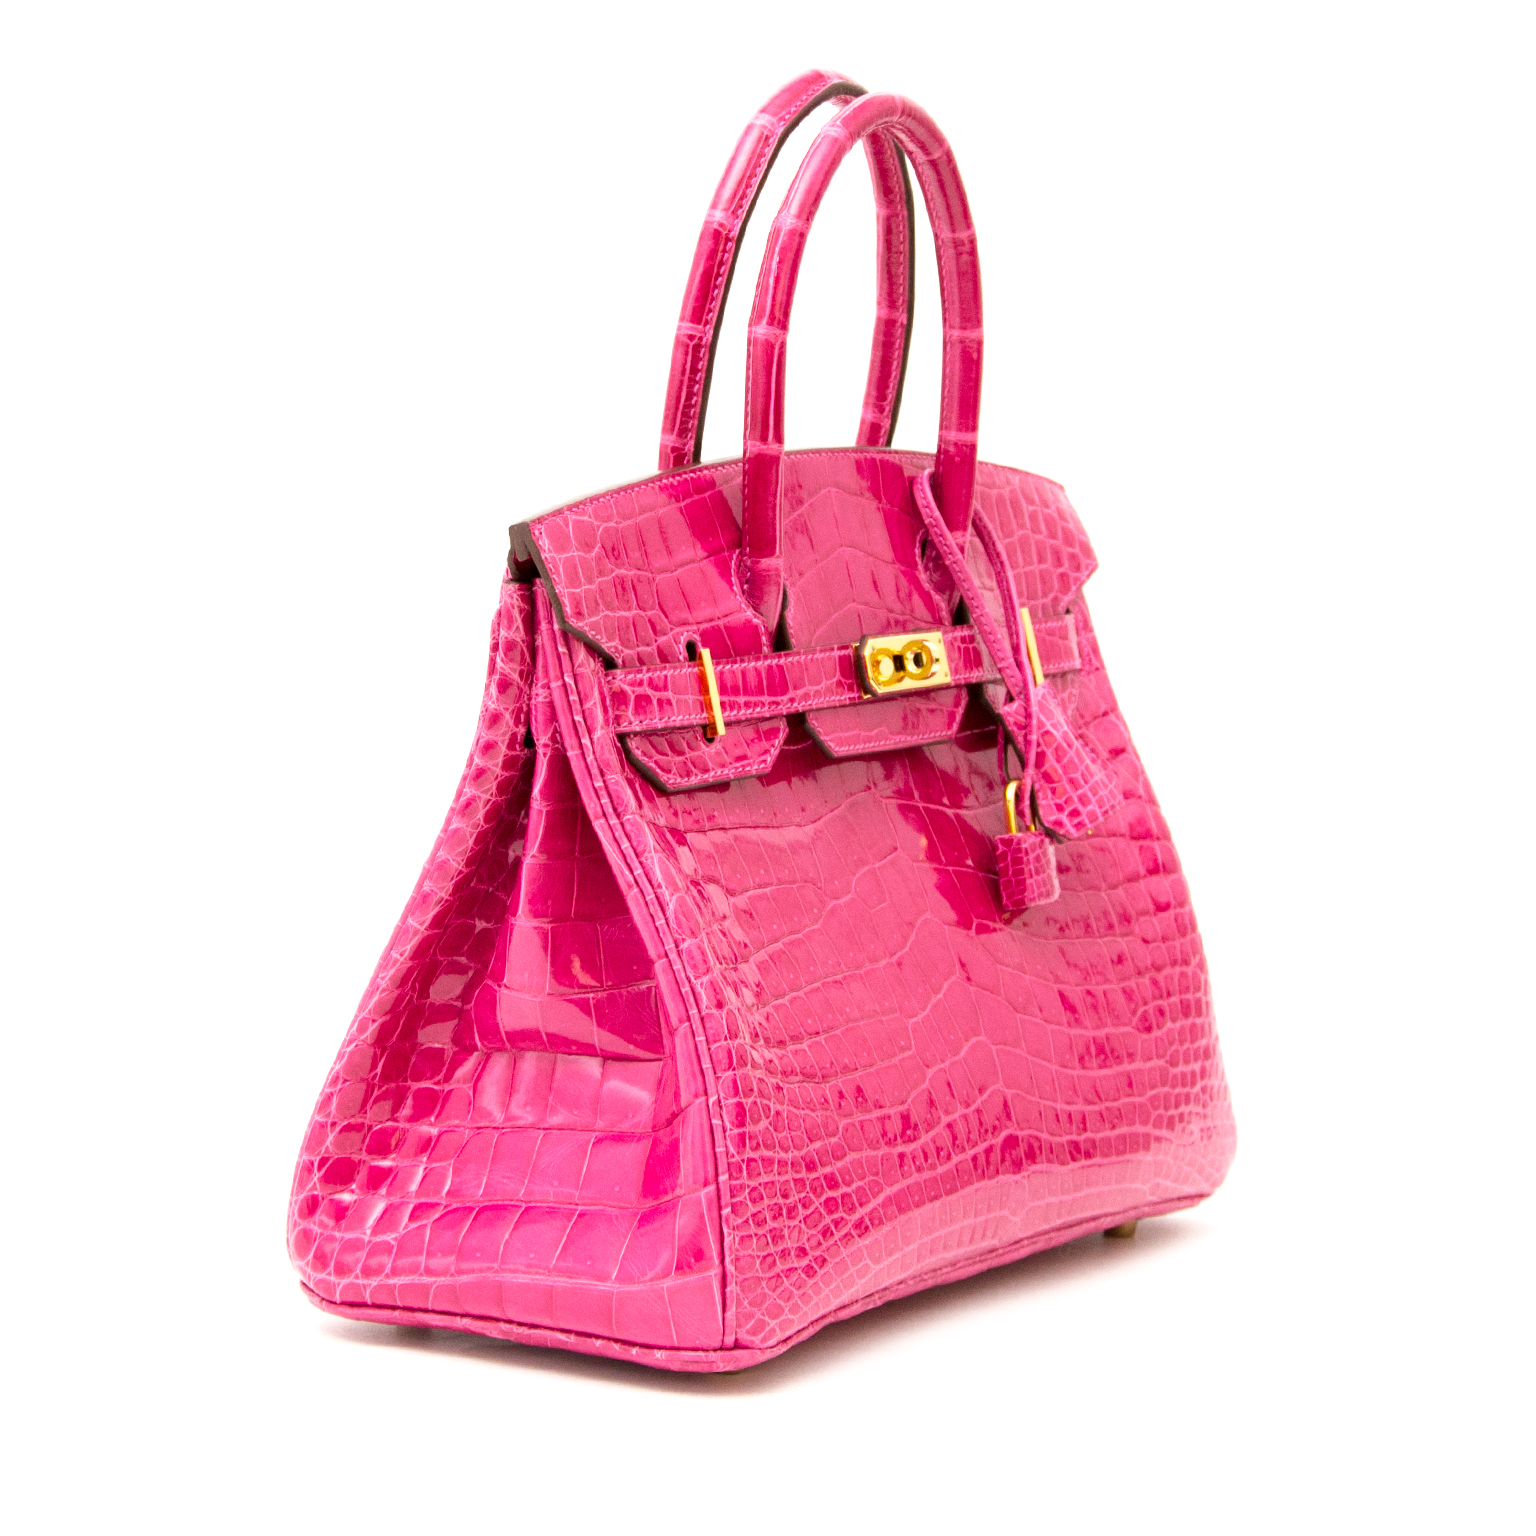 Skip the waiting list and get your hands on this extremely rare Hermès Birkin 30 Rose Scheherazade Croco Lisse GHW